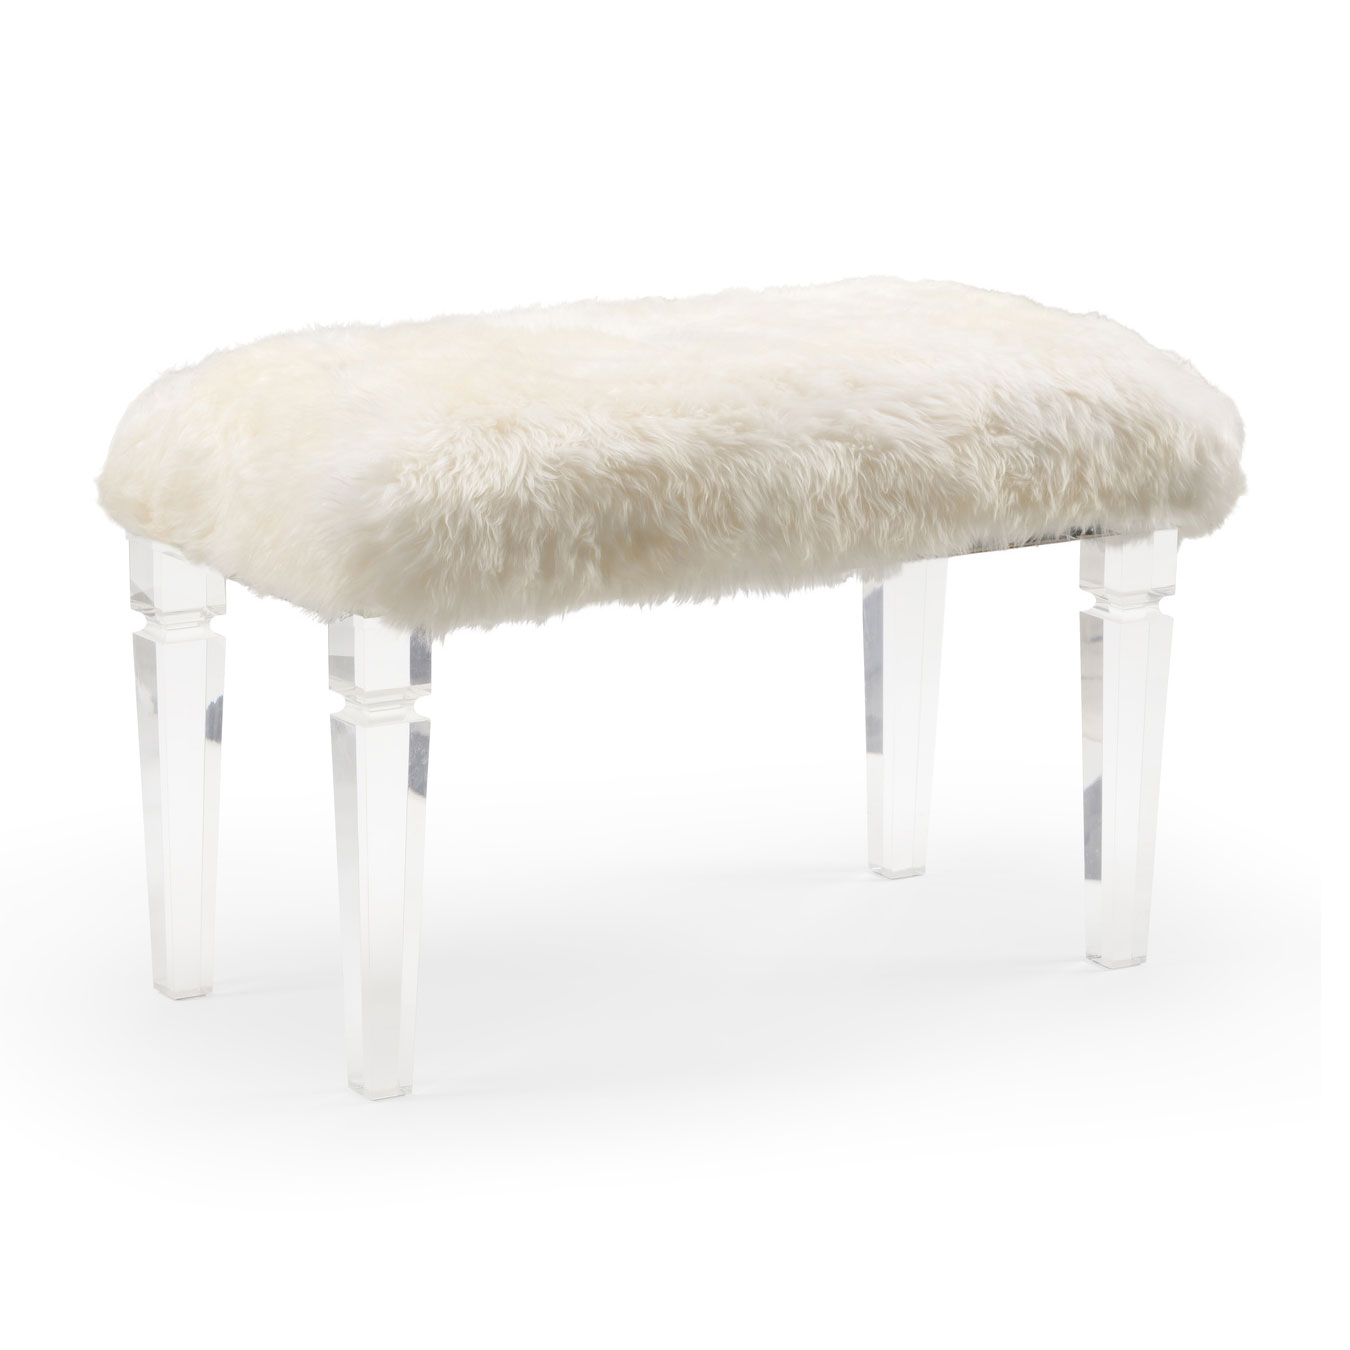 Surprising Acrylic Bench With White Fur Squirreltailoven Fun Painted Chair Ideas Images Squirreltailovenorg